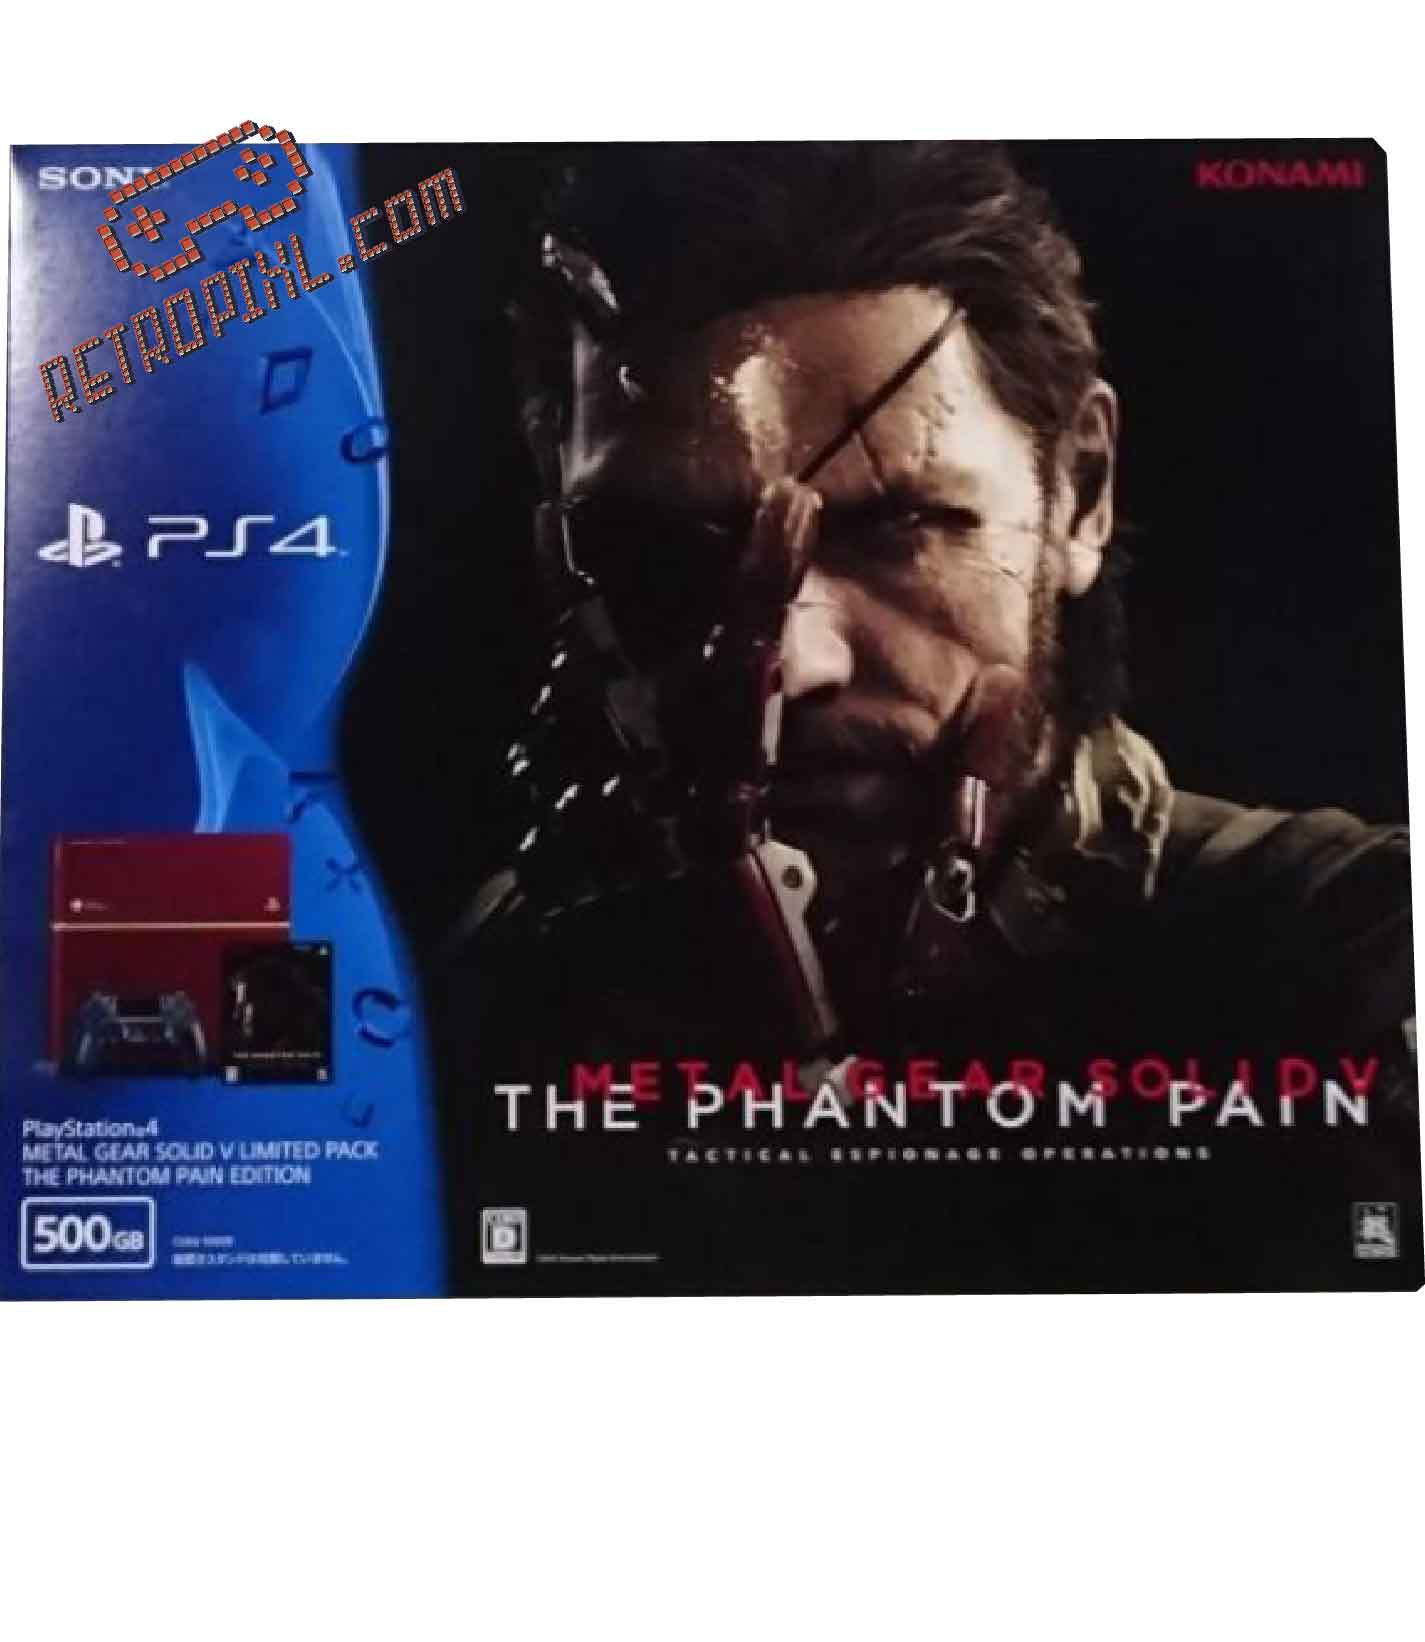 Sony Playstation 4 (PS4) Metal Gear Solid V the Phantom Pain LIMITED EDITION